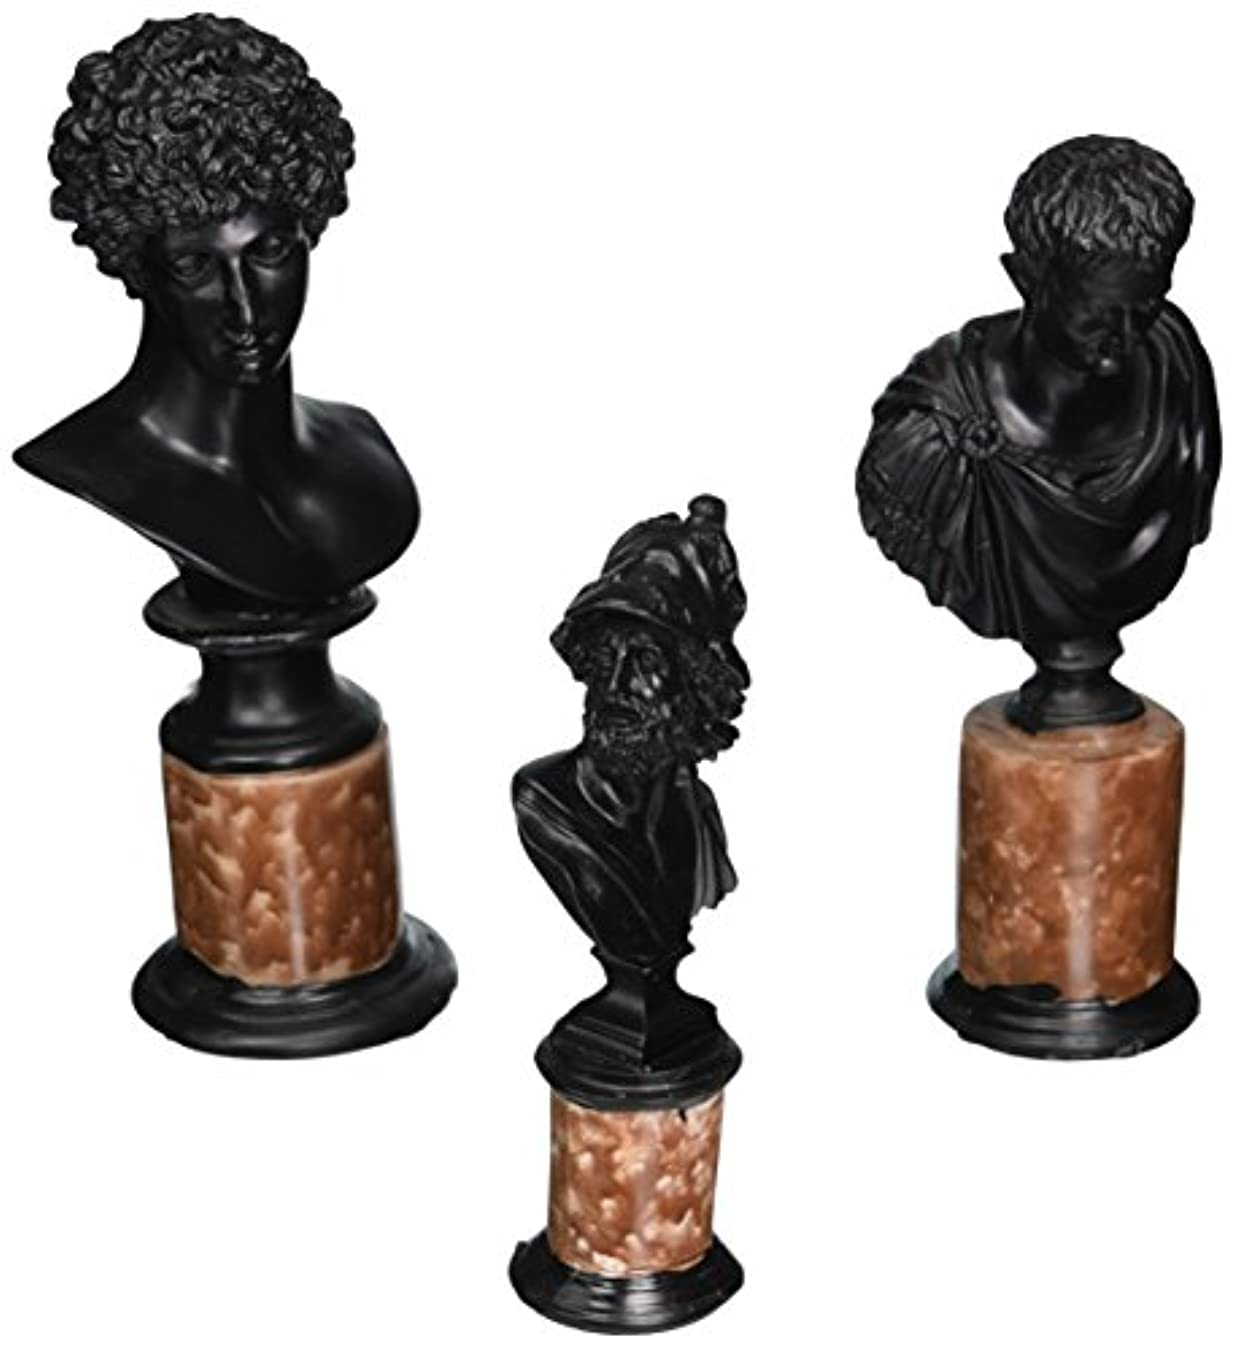 Design Toscano Heroes of Antiquity Ajax Caesar and Adonis Sculptural Busts